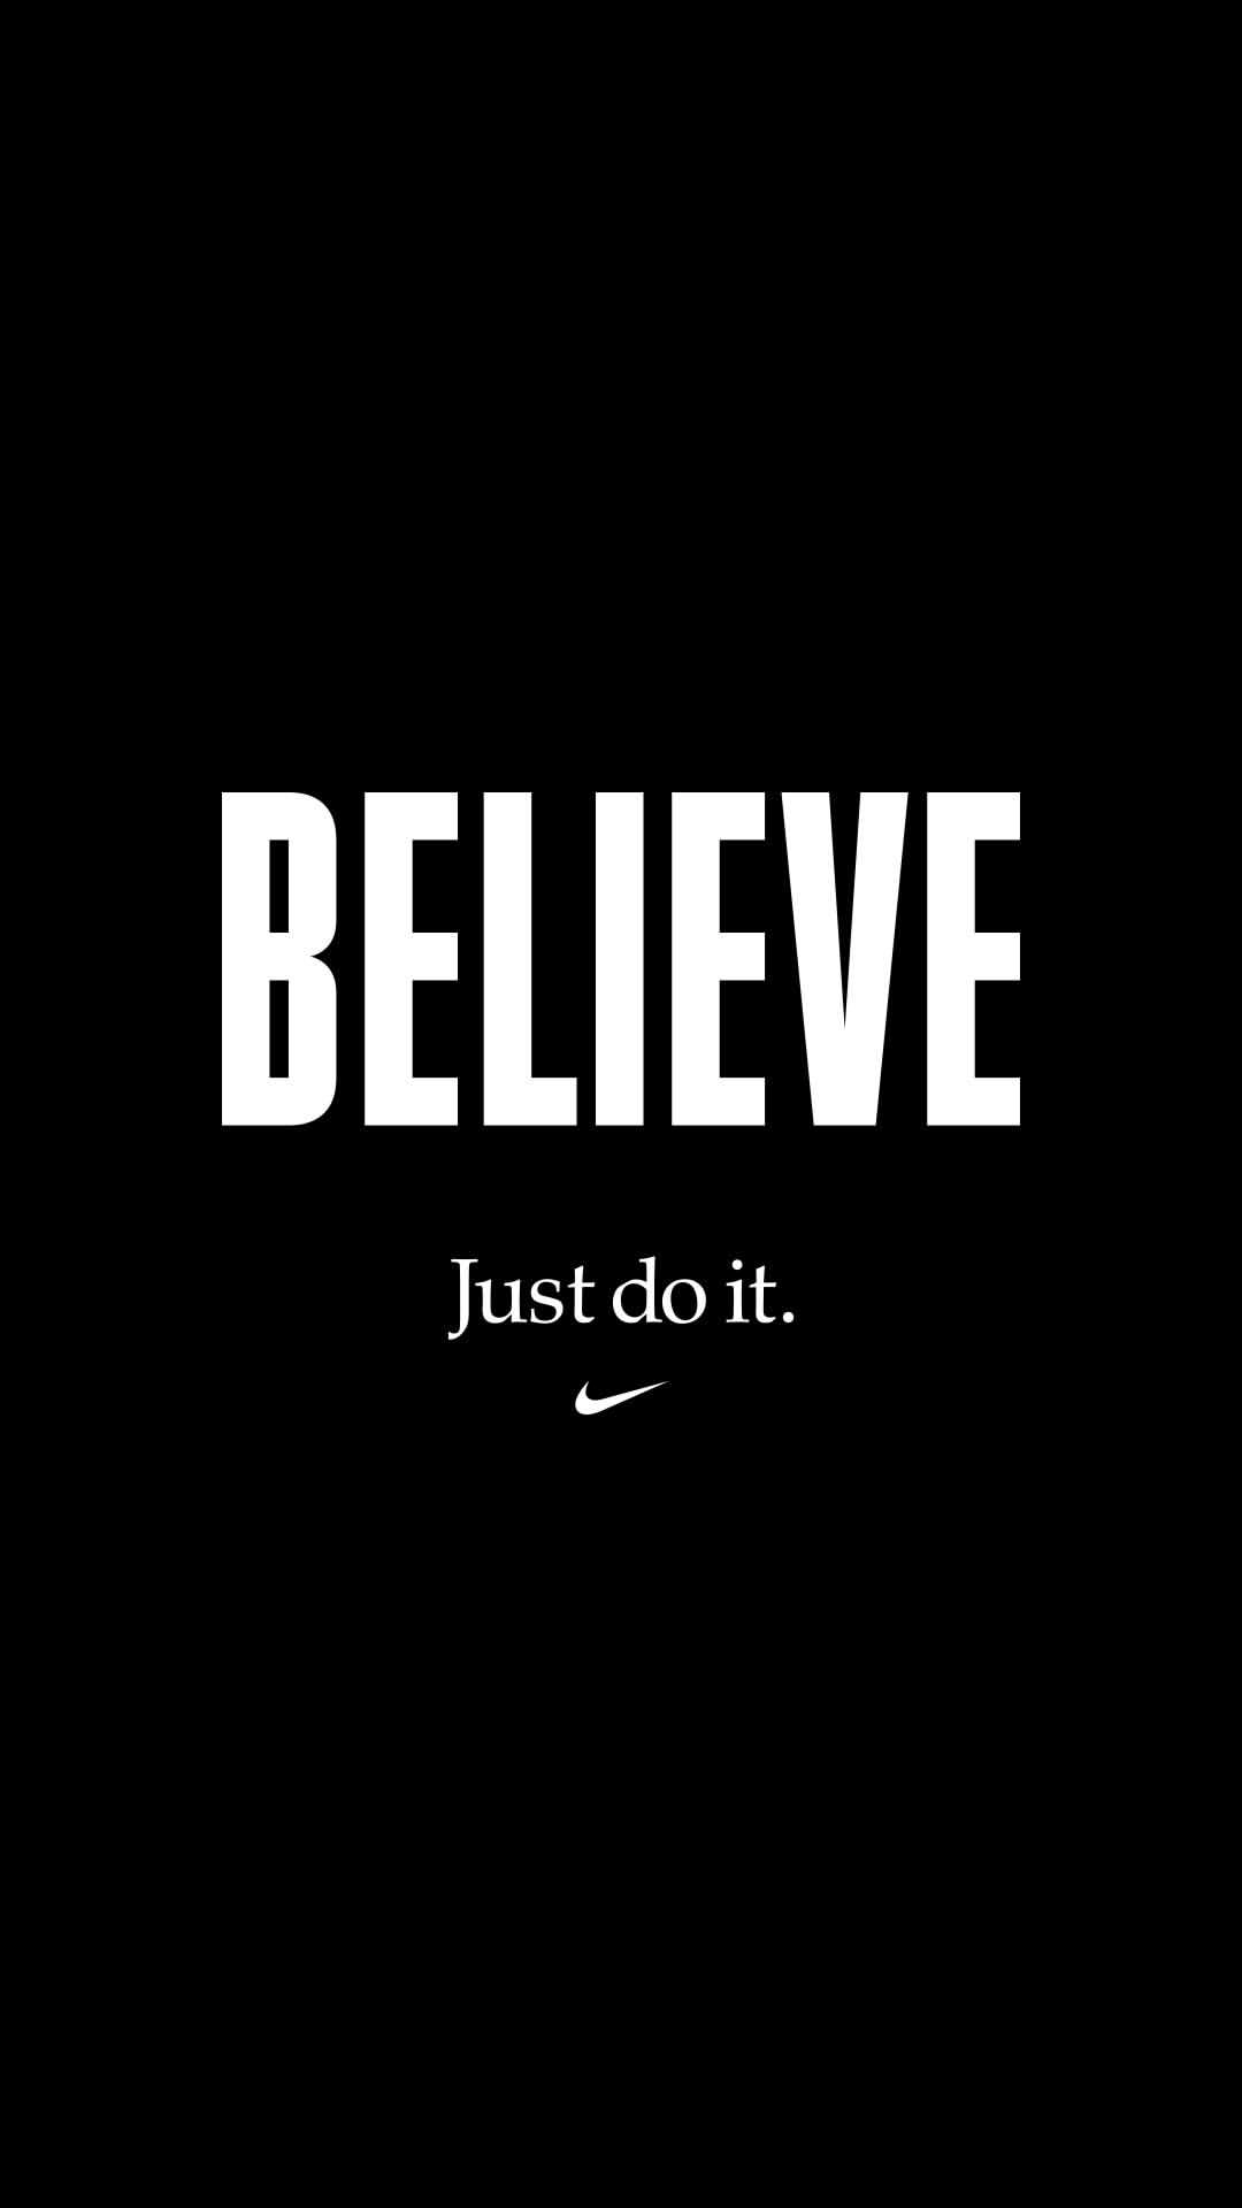 Pin By 阮 坤月 On Ideas For The House Nike Quotes Nike